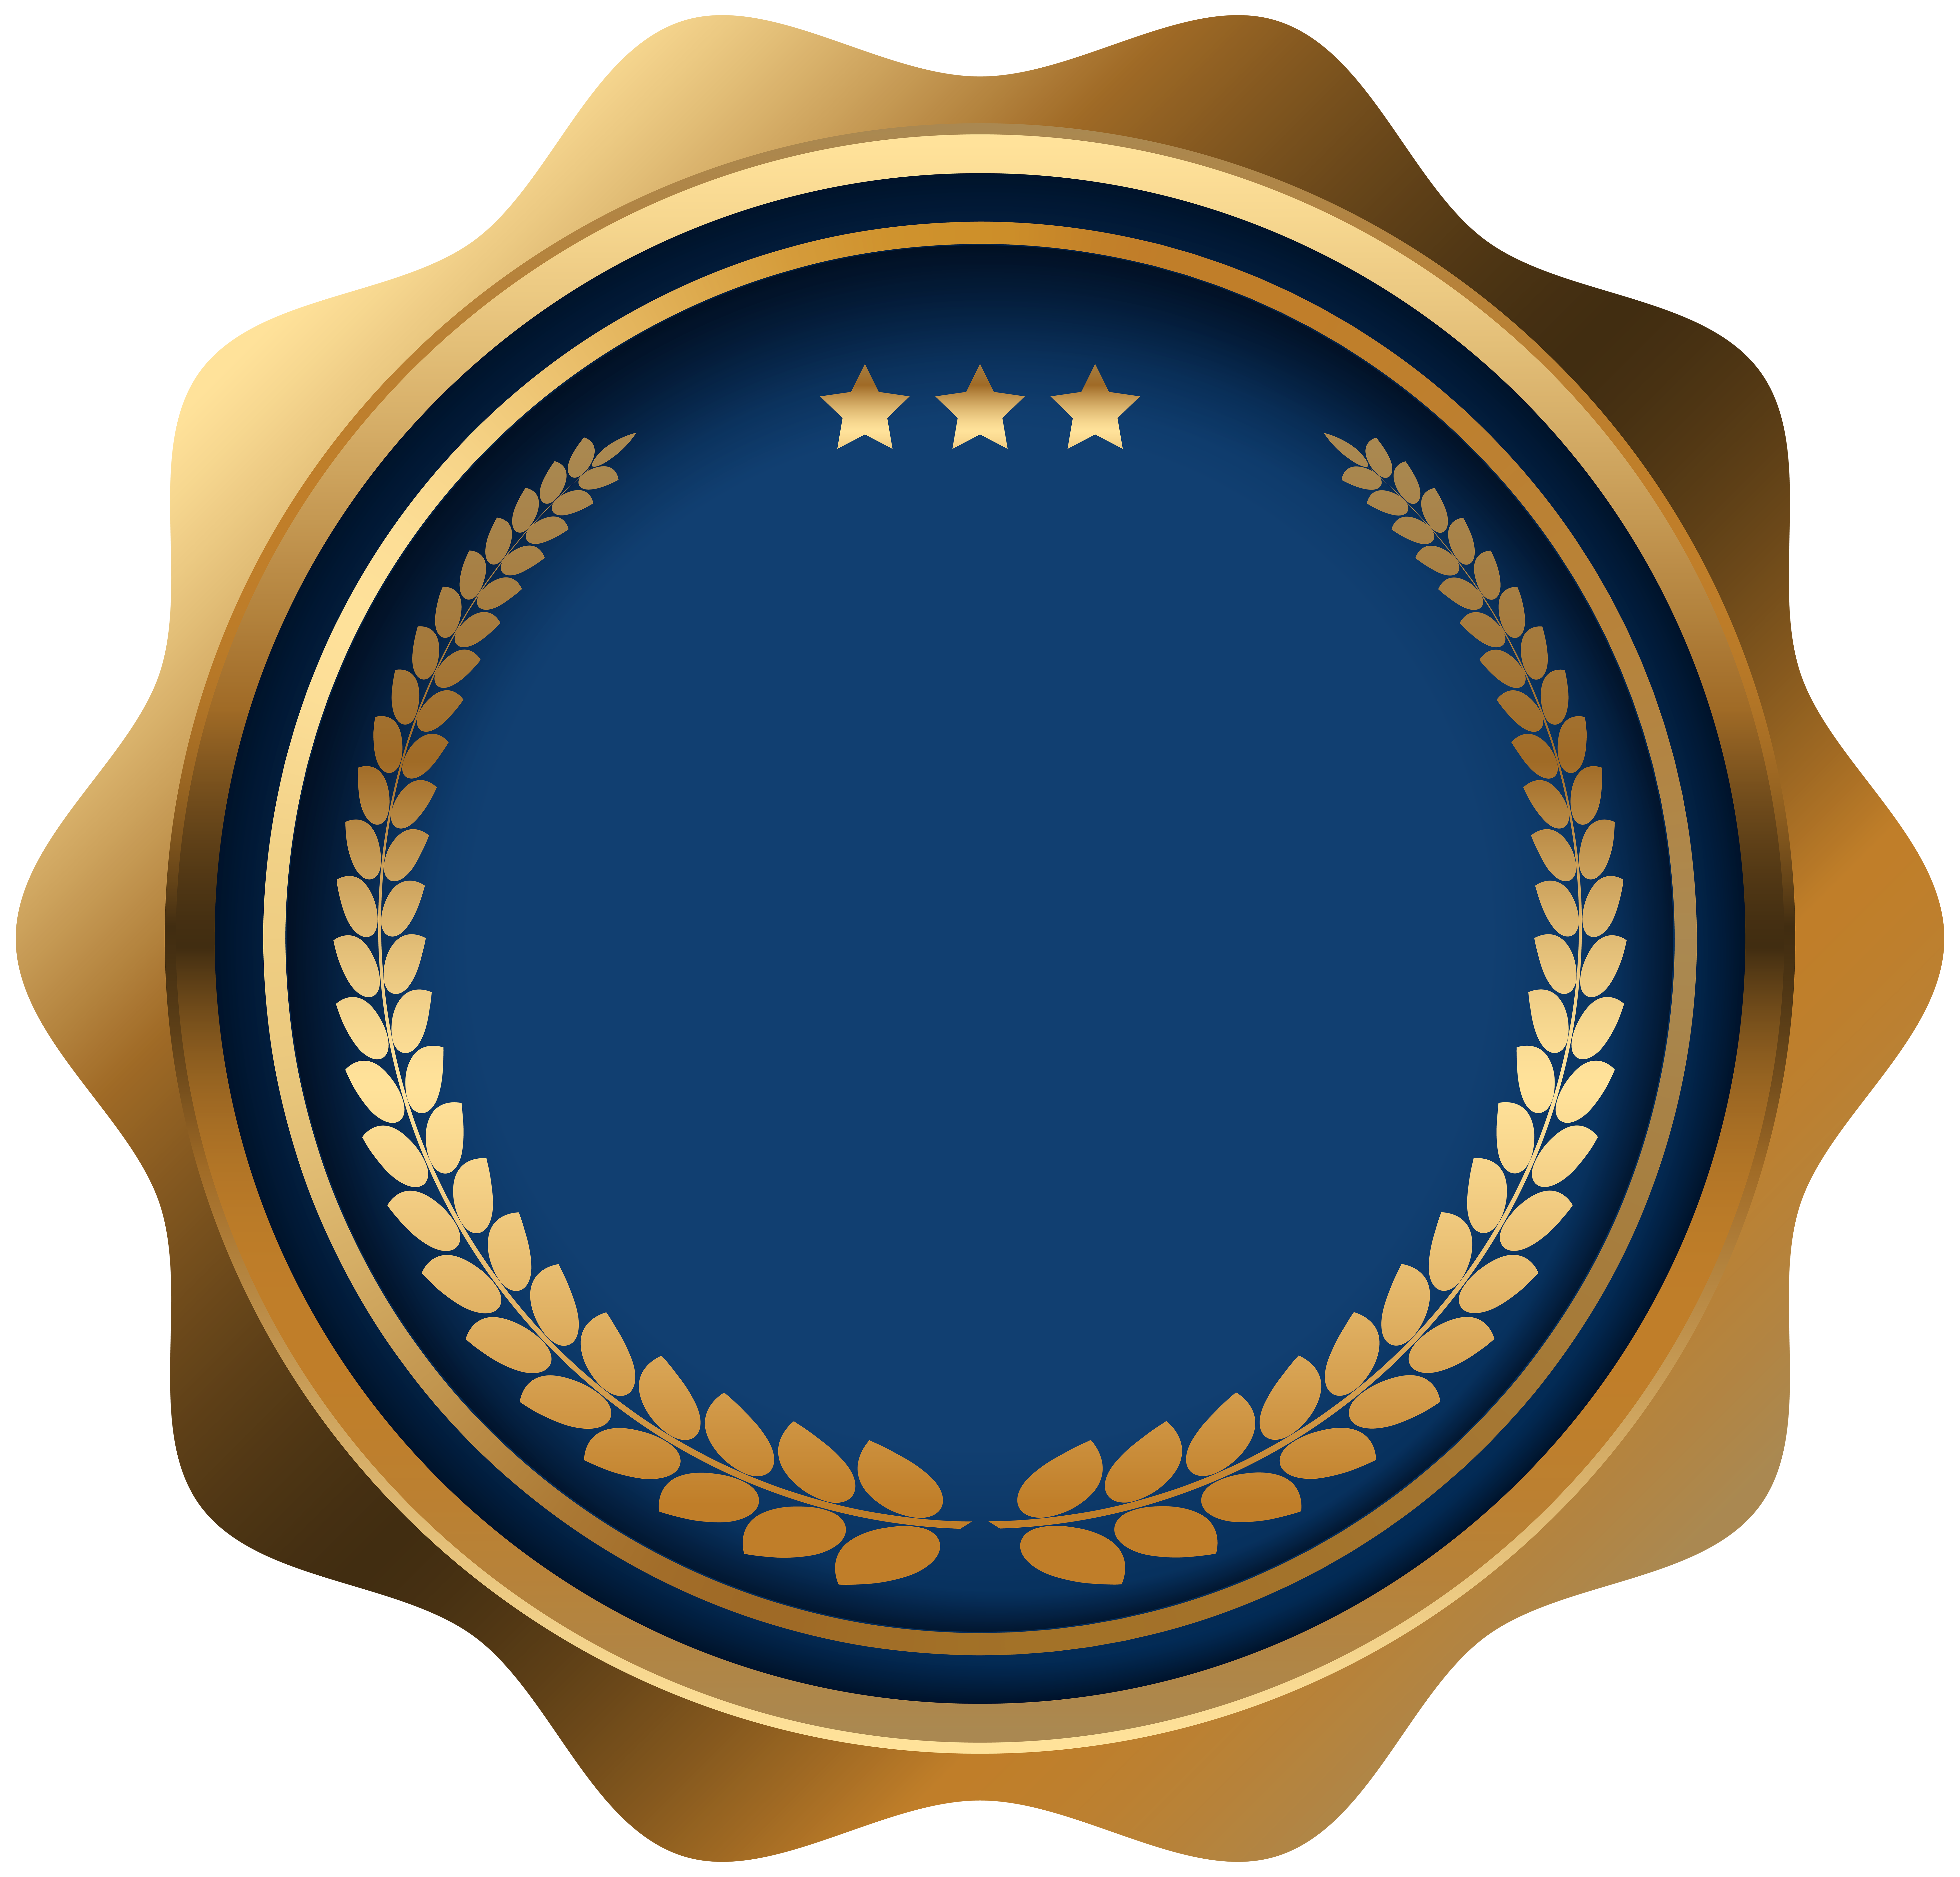 Seal Badge Blue Png Clip Art Image Gallery Yopriceville High Quality Images And Transparent Png Free Clipart Art Images Clip Art Free Clip Art